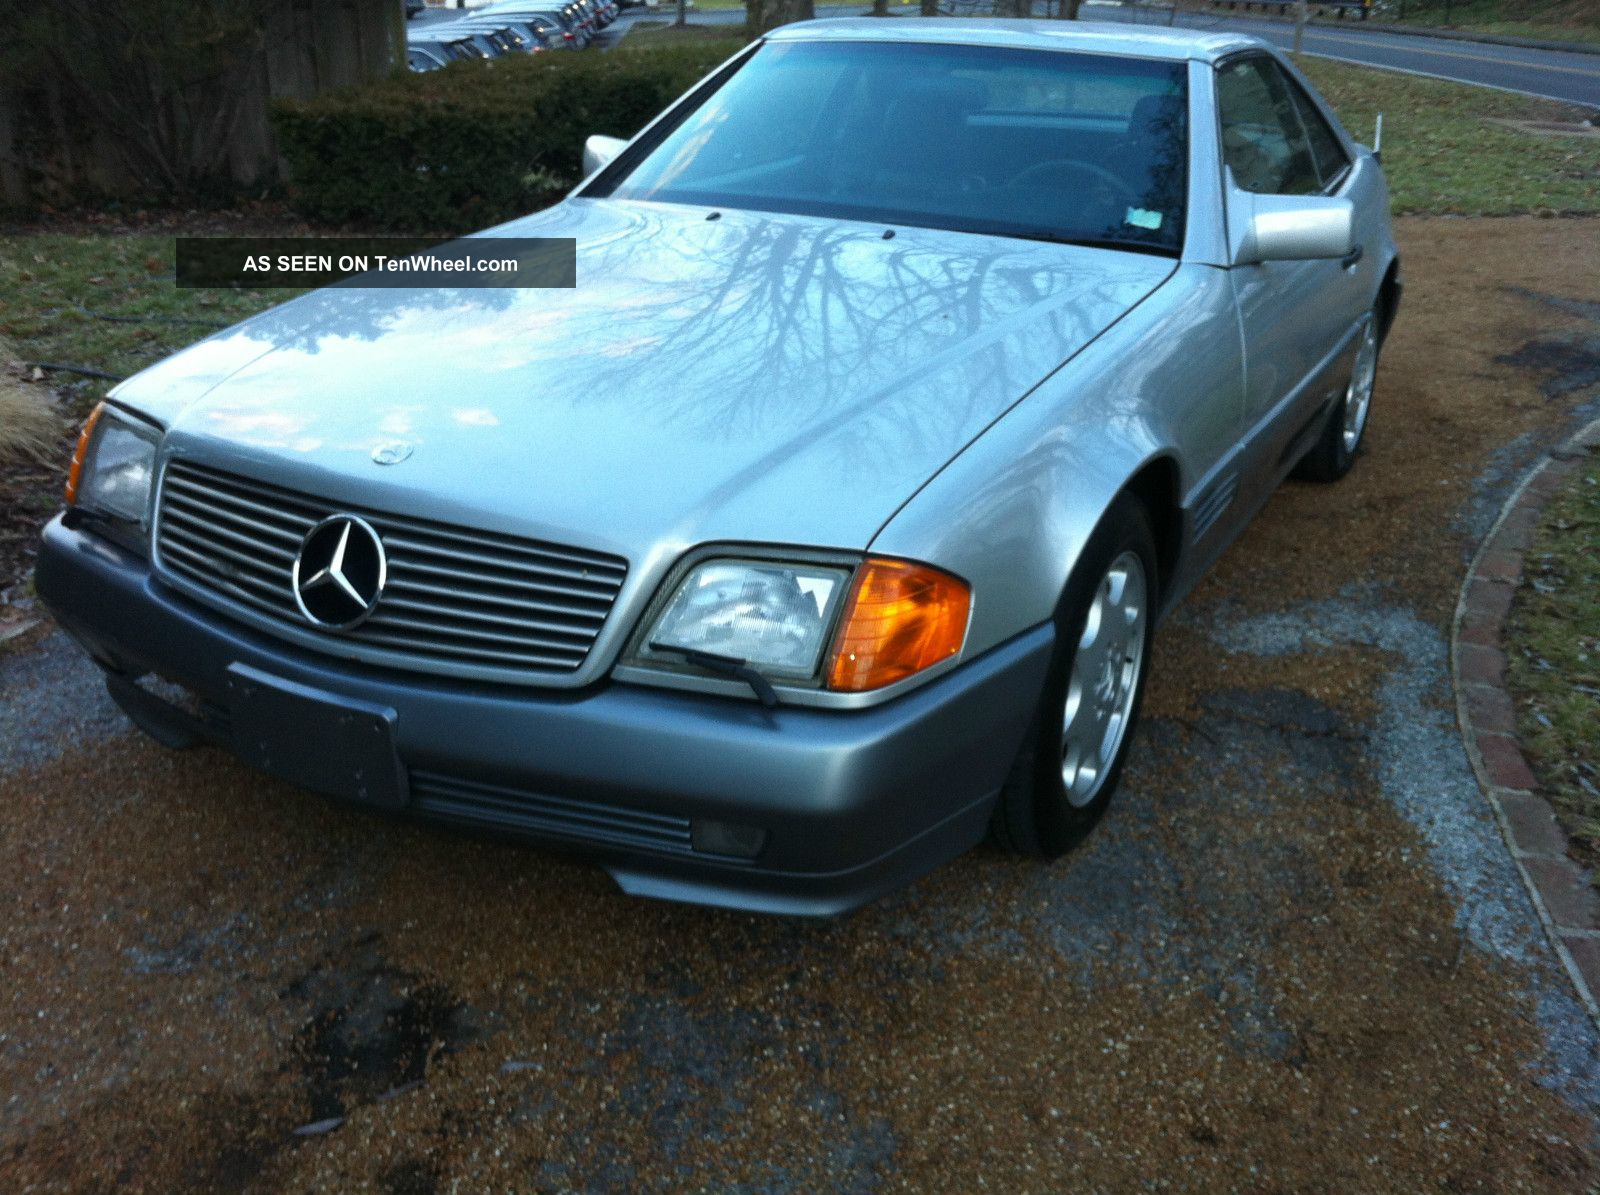 1991 mercedes benz sl500 extra cafax hardtop for 1991 mercedes benz 500sl convertible